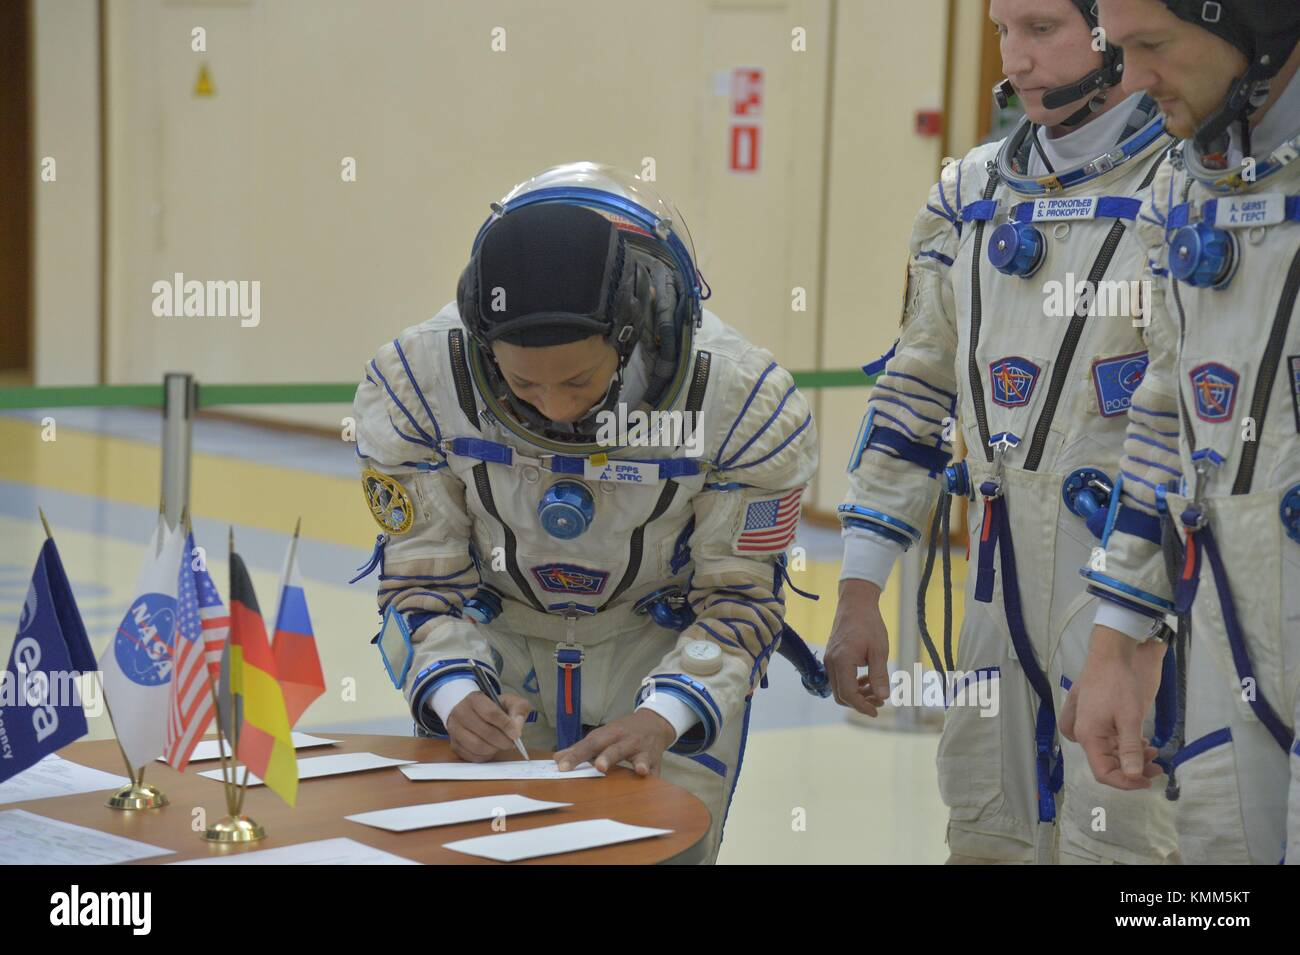 NASA International Space Station Expedition 54-55 backup crew member American astronaut Jeanette Epps (left) signs - Stock Image